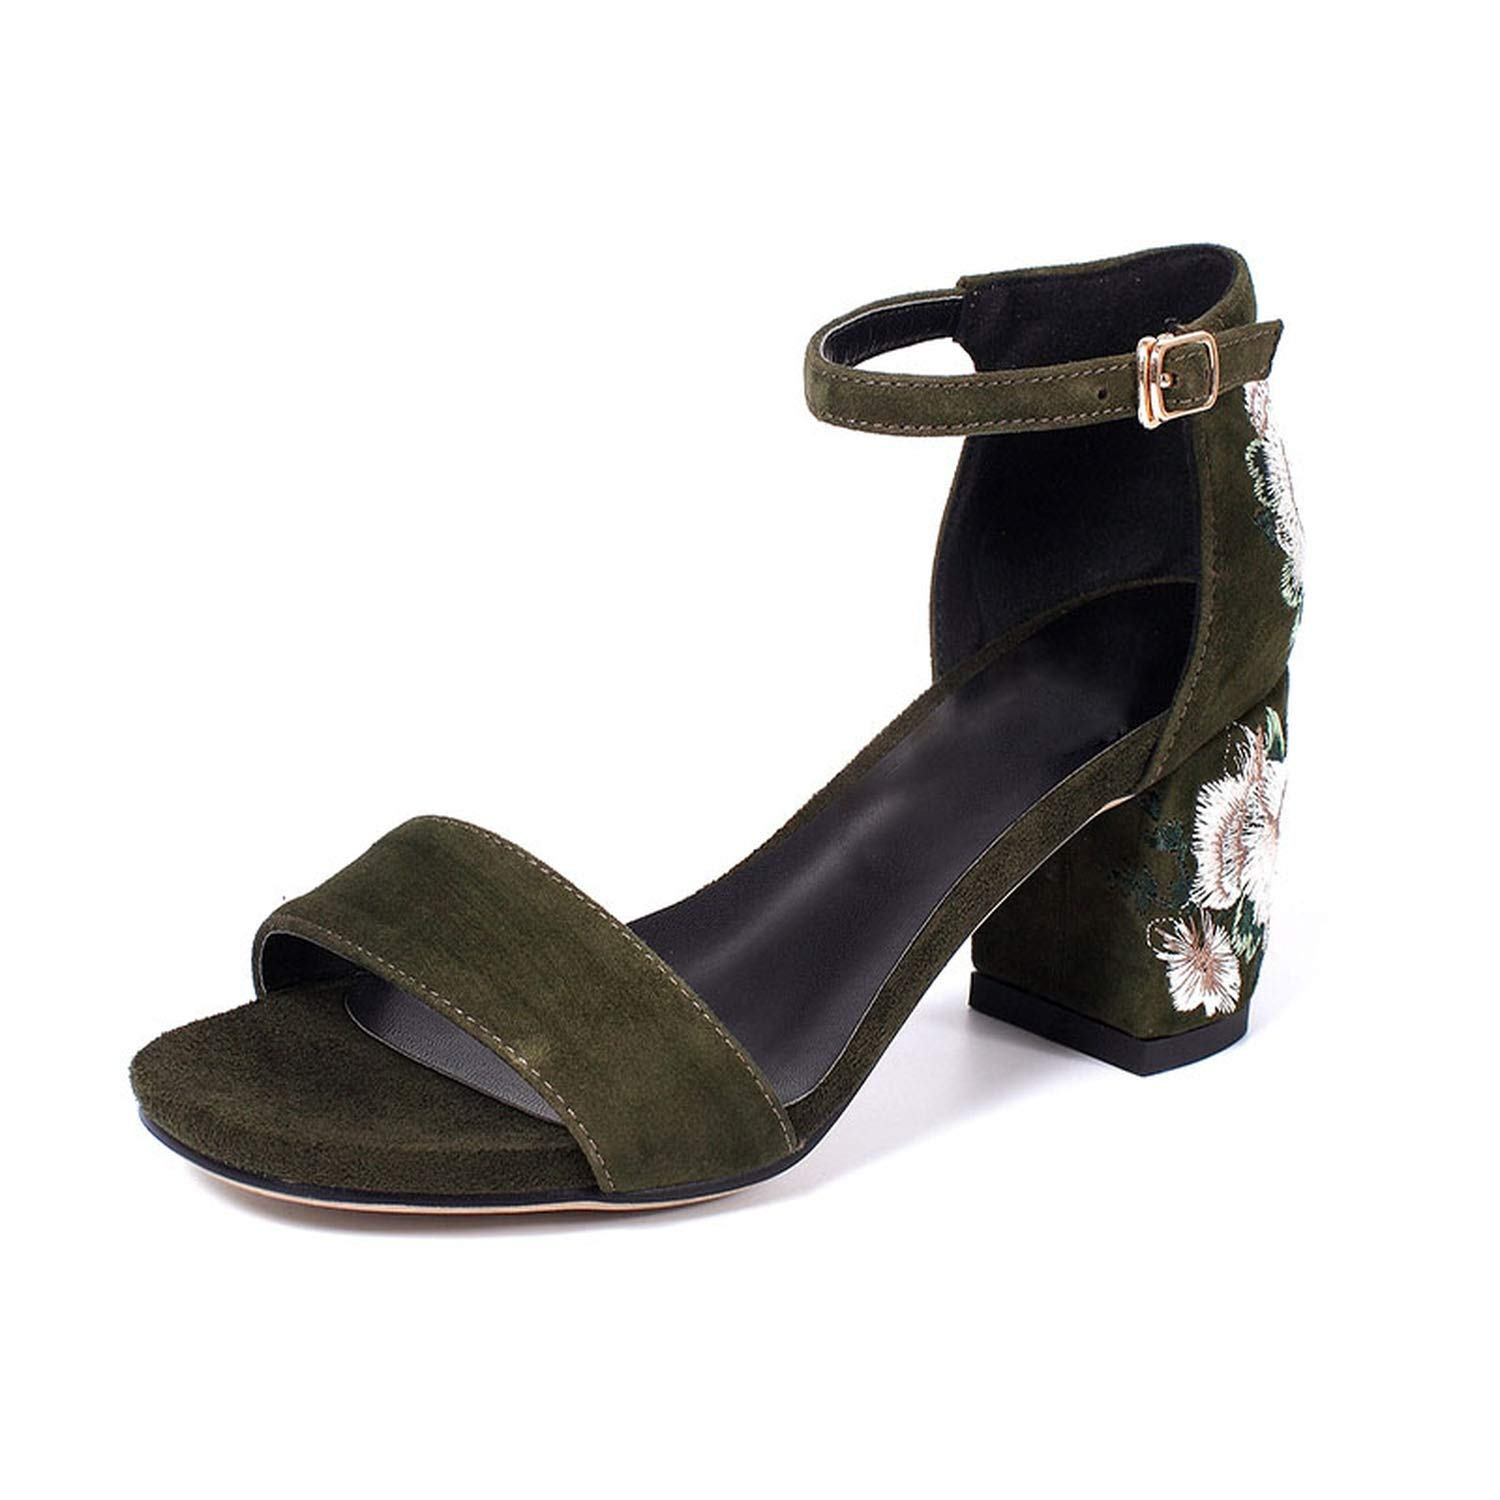 Army Green High Heel Sandals Real Leather Ankle Strap Thick Heel Print Sandals Elegant Vintage shoes